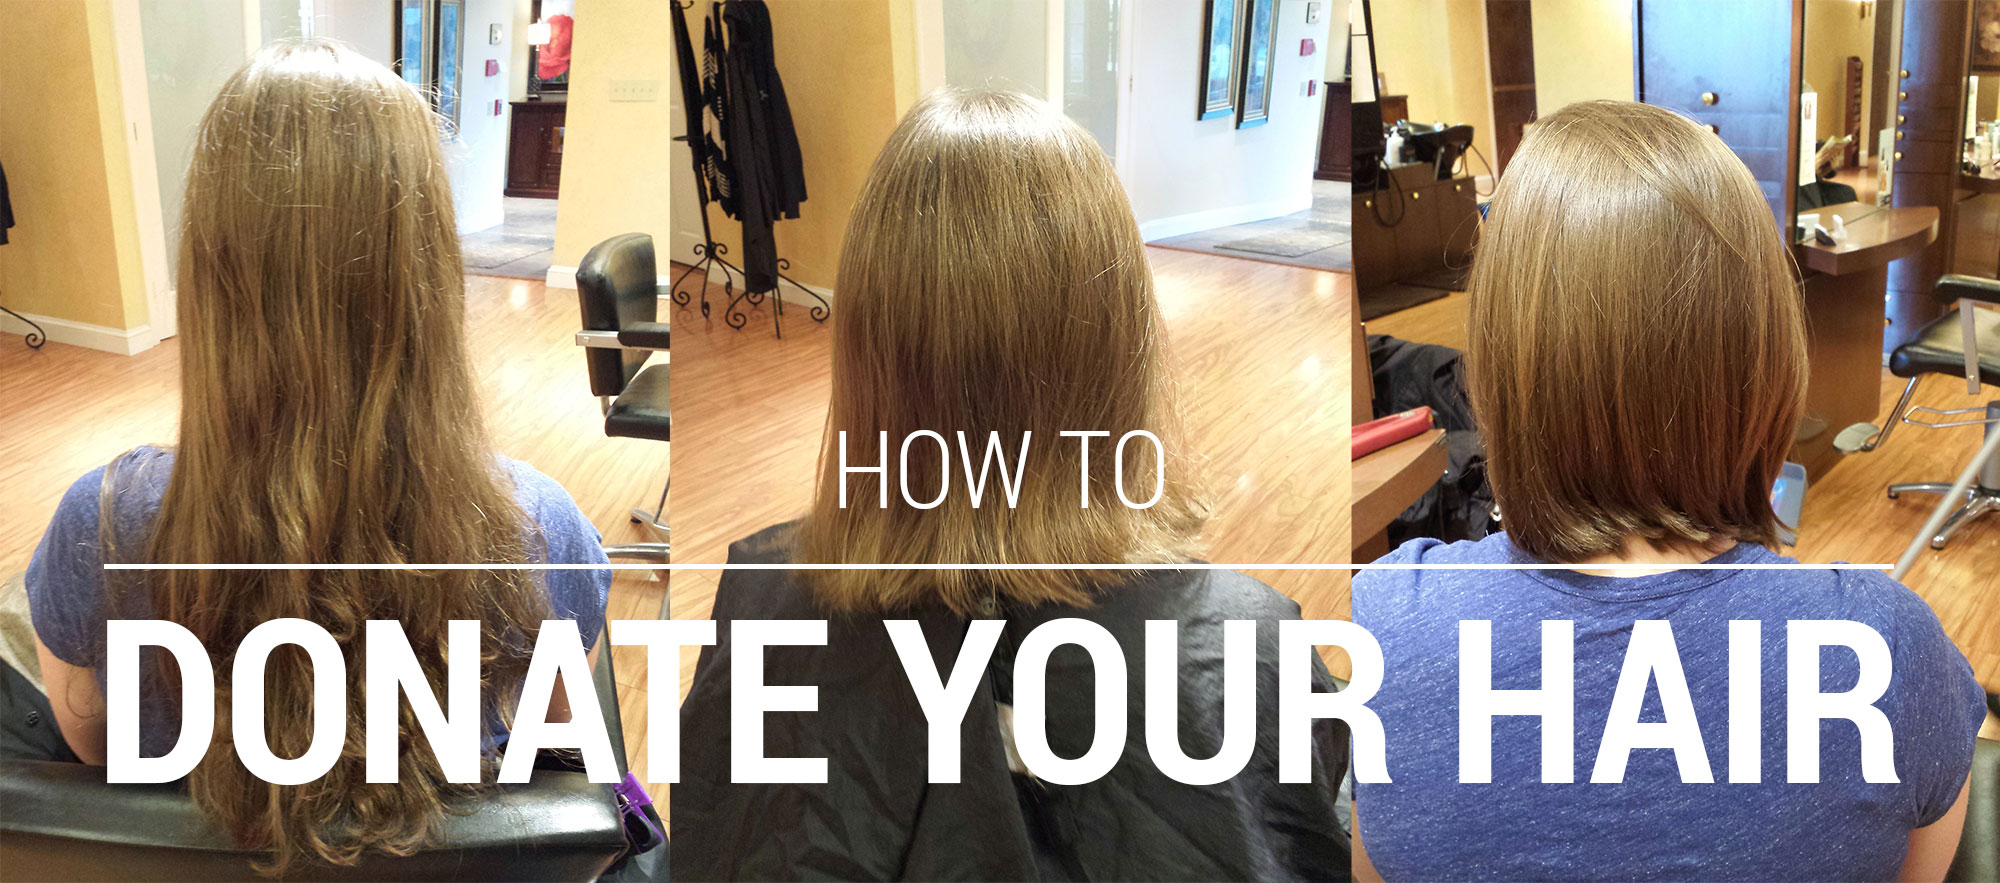 how to donate your hair